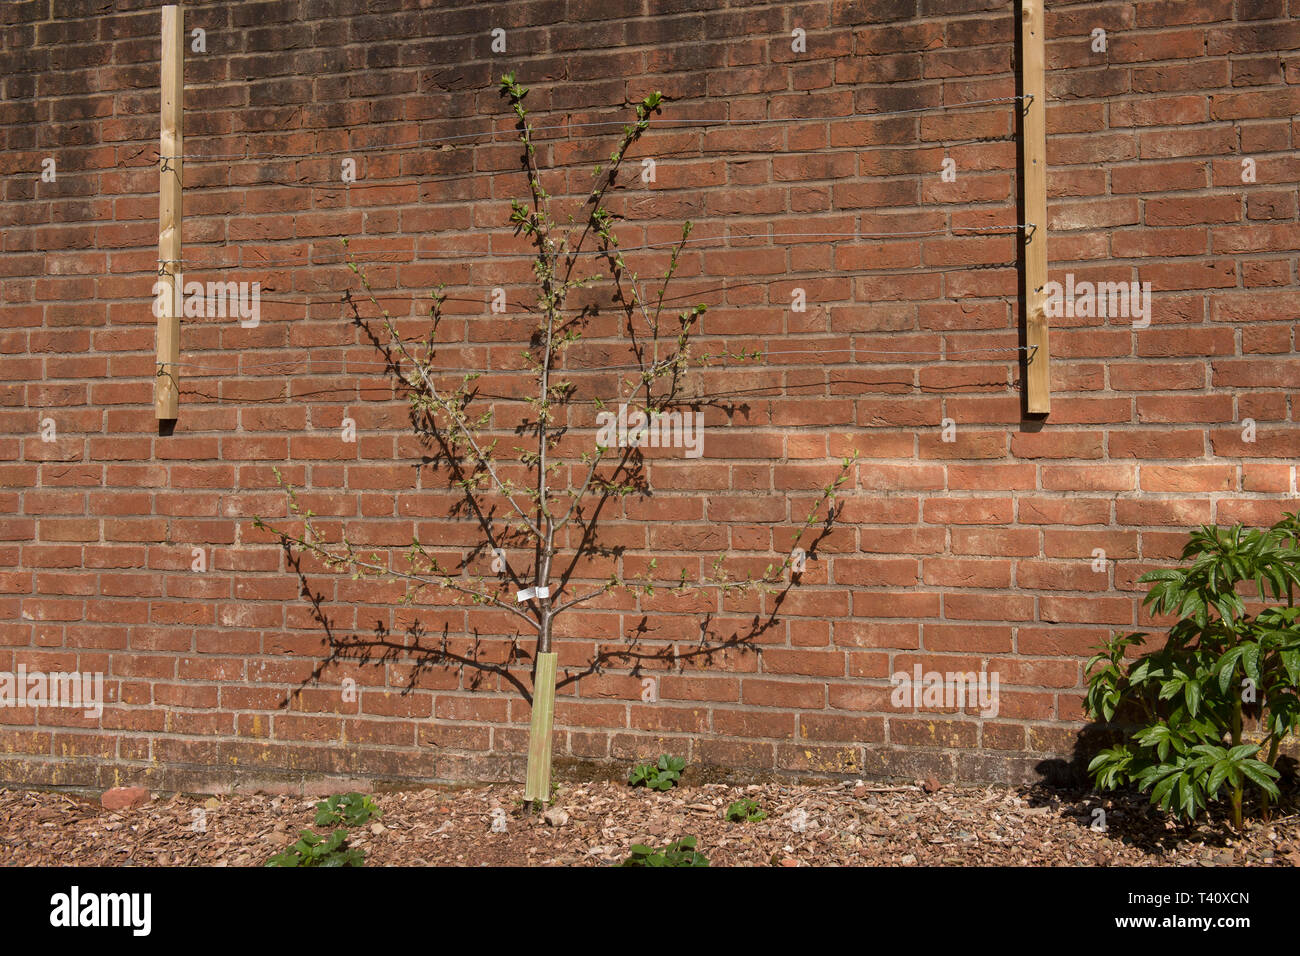 training a fruit tree against a wall - Stock Image